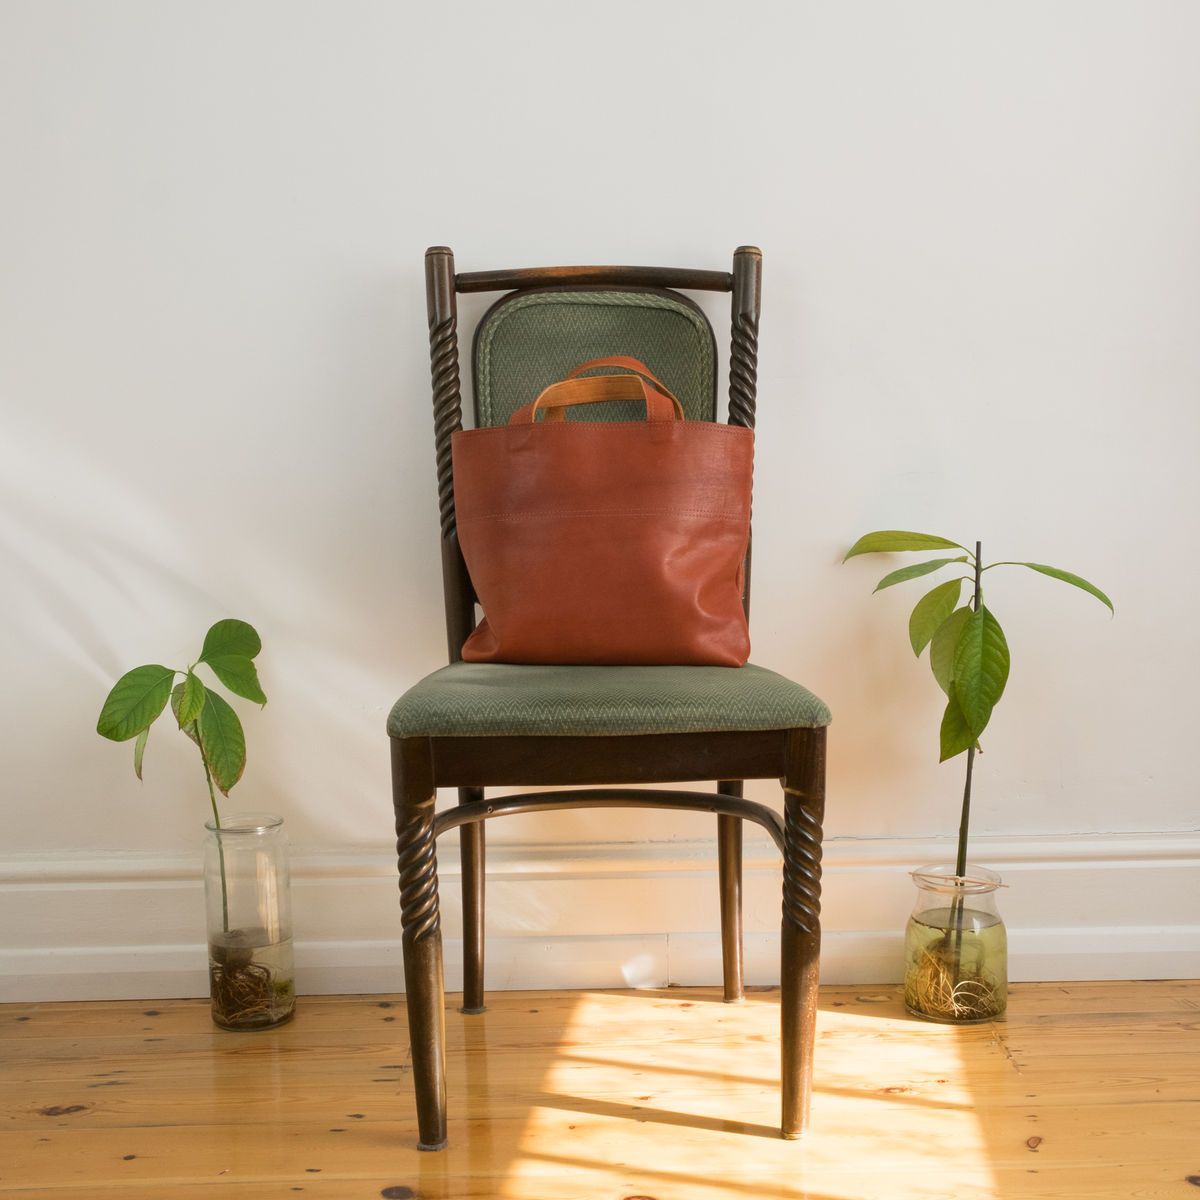 The perfect size leather handheld tote bag - Handmade in Palestine - Designed by Grace Abdo - product images  of